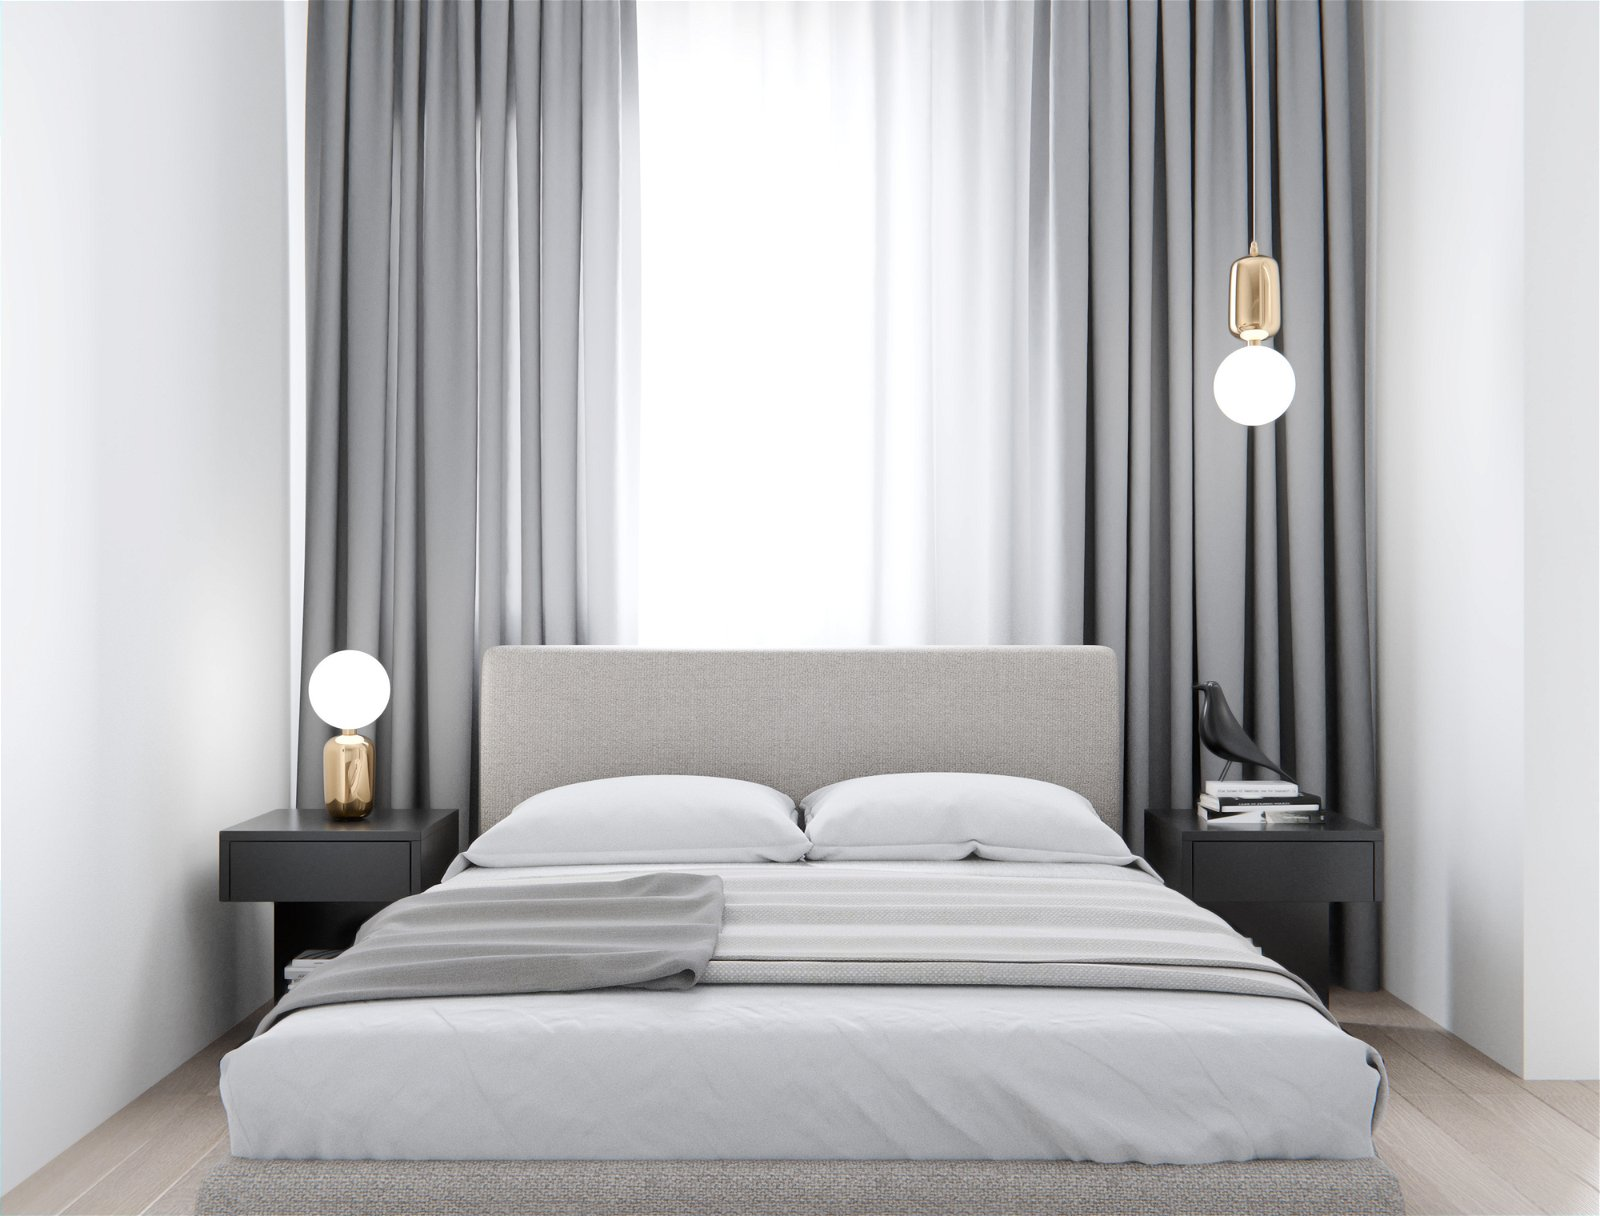 23.SIMPHOME.COM A modern design ideas for your bedroom the luxpad